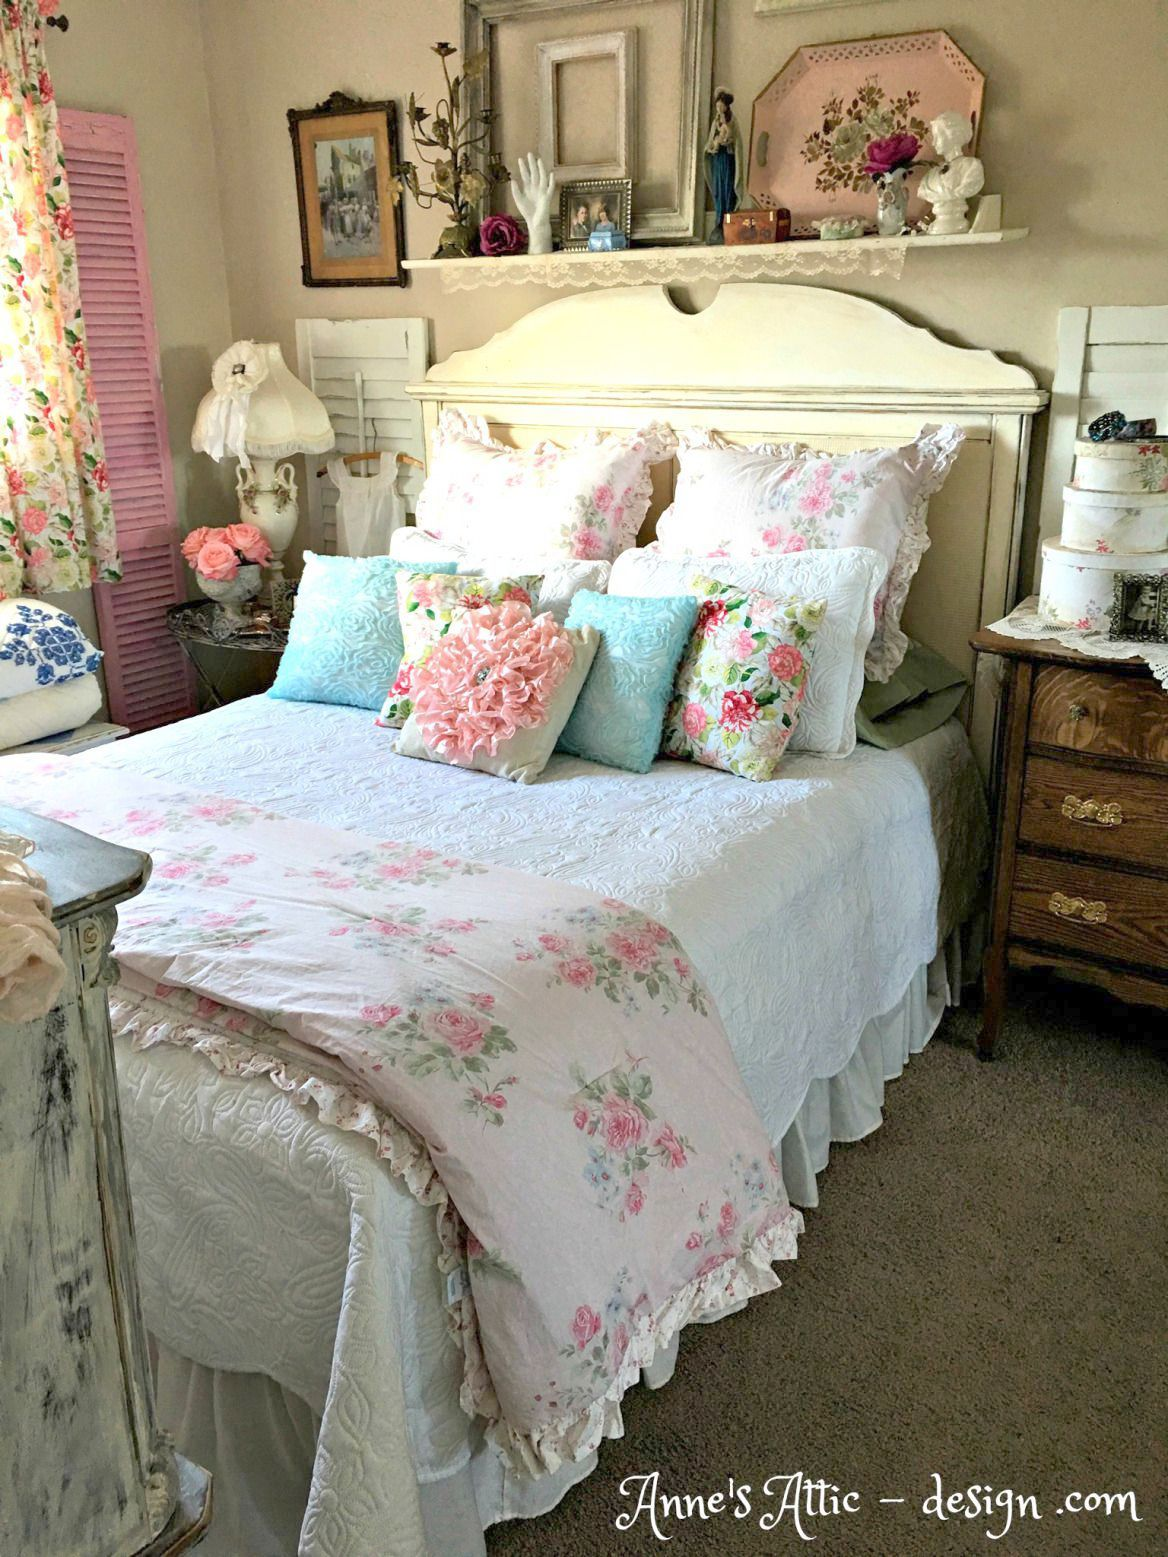 Cottage Design Blogs This Small Cottage Renovation Ideas Uk Along With Romantic Getaway Packages In Chicago All Home Dec Shabby Chic Bedrooms Chic Bedroom Home Cottage bedroom ideas uk